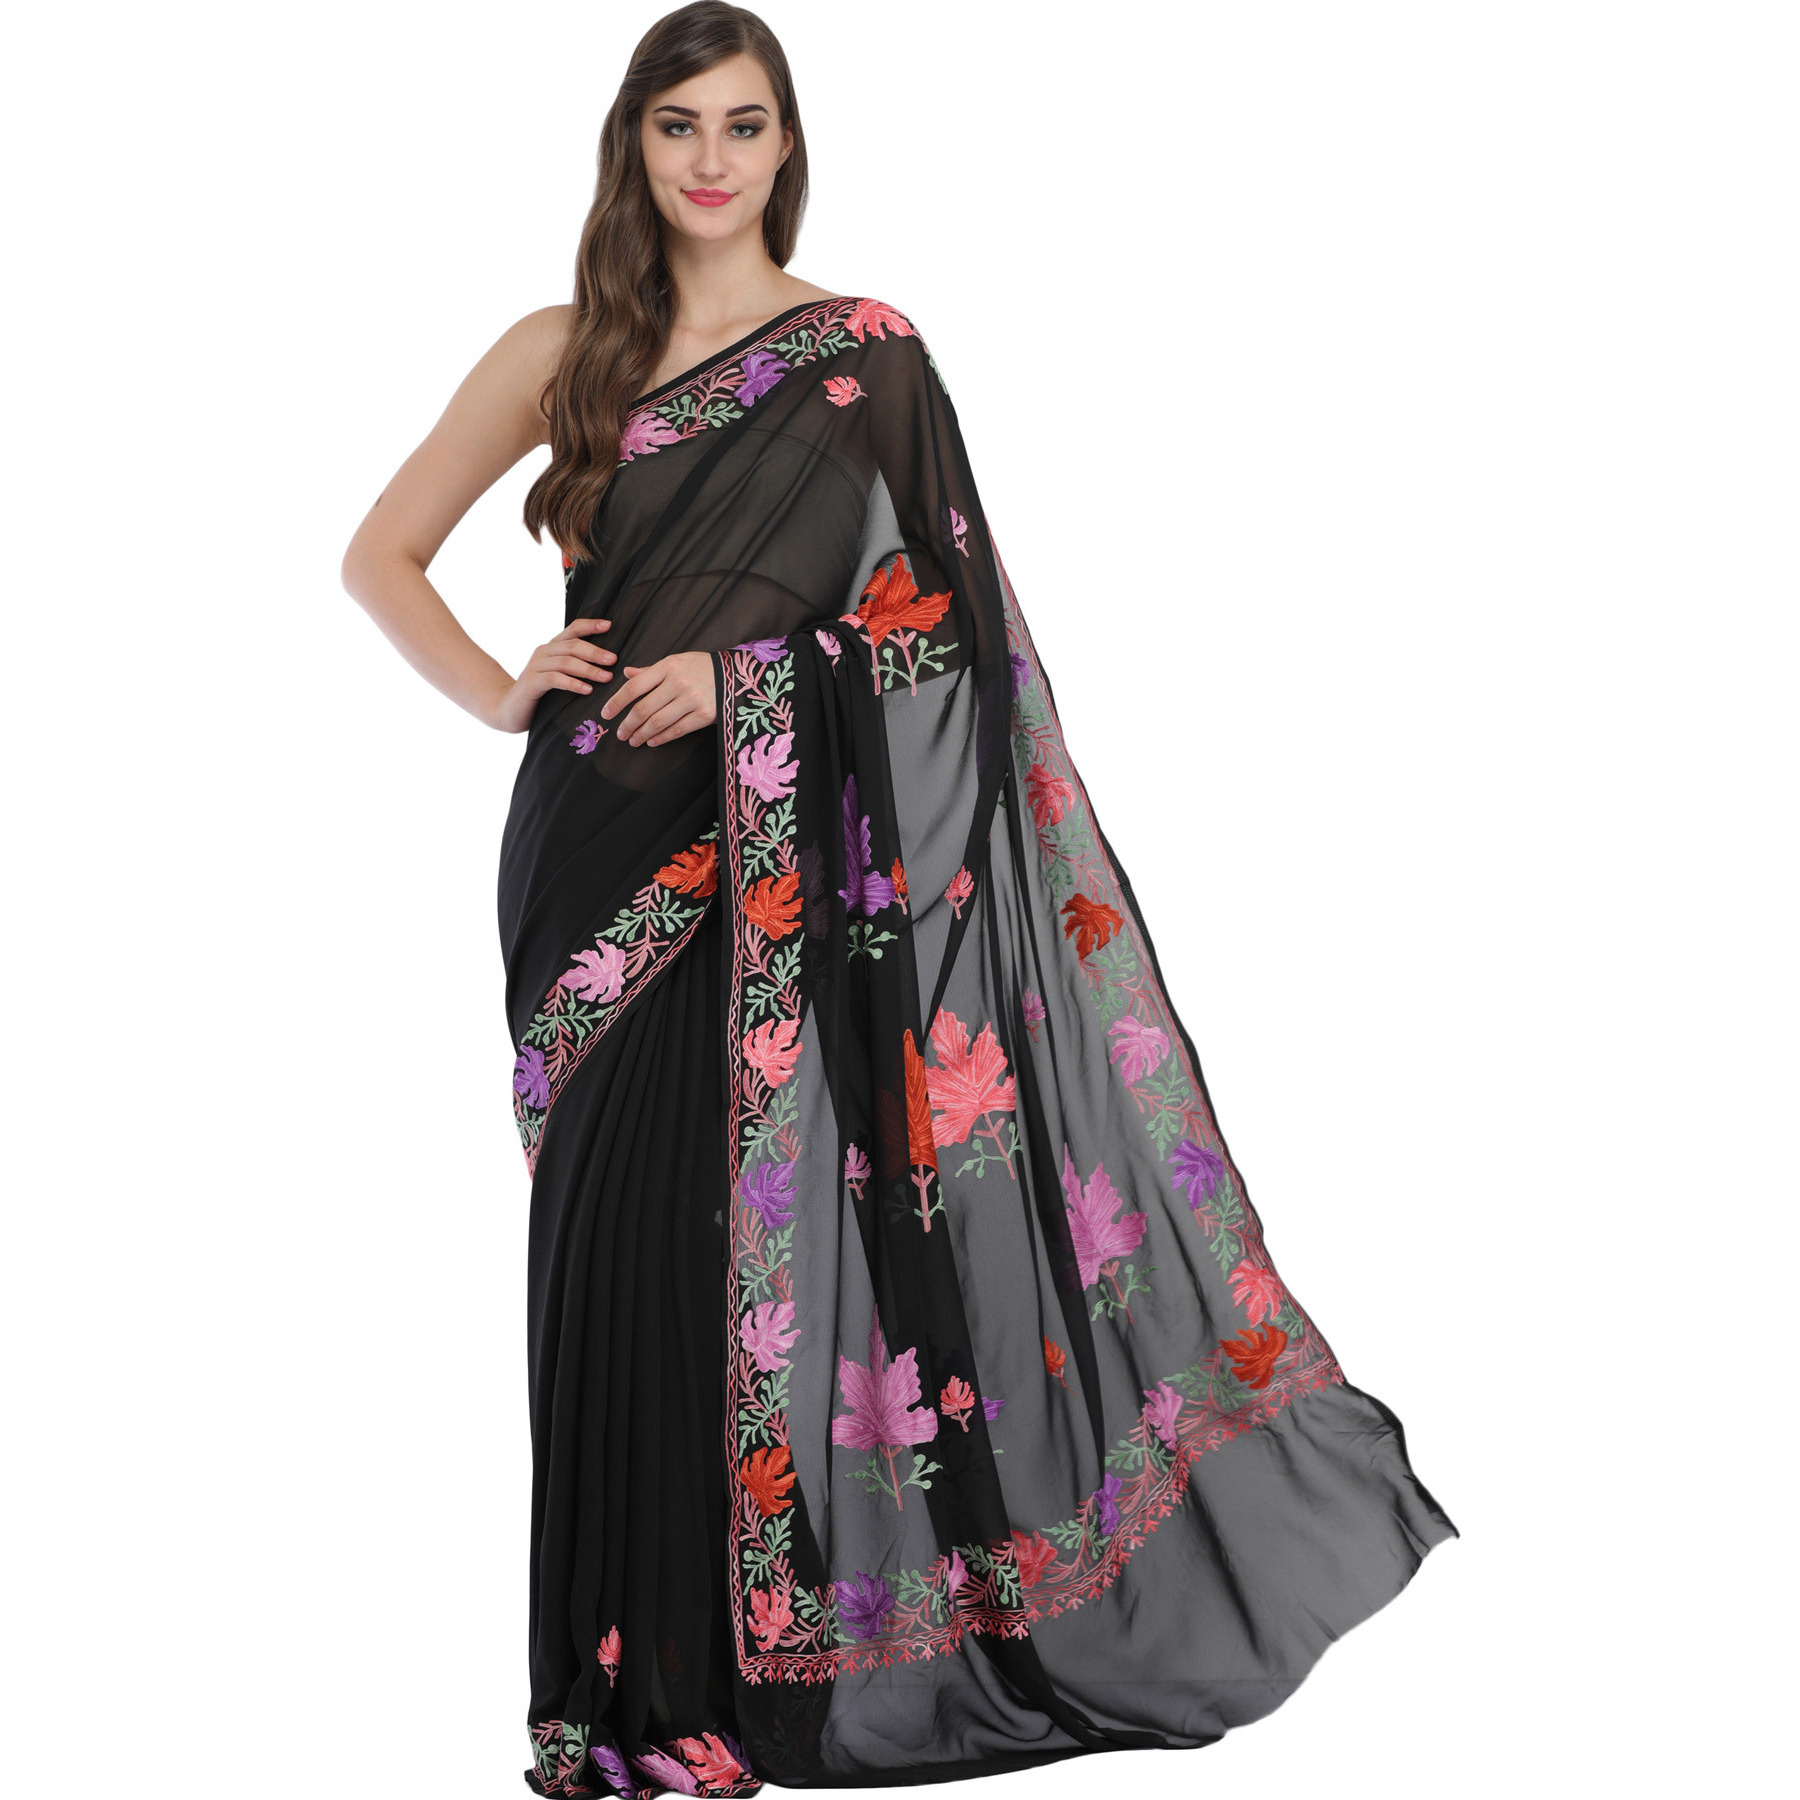 Caviar-Black Kashmiri Sari with Ari-Embroidered Maple Leaves